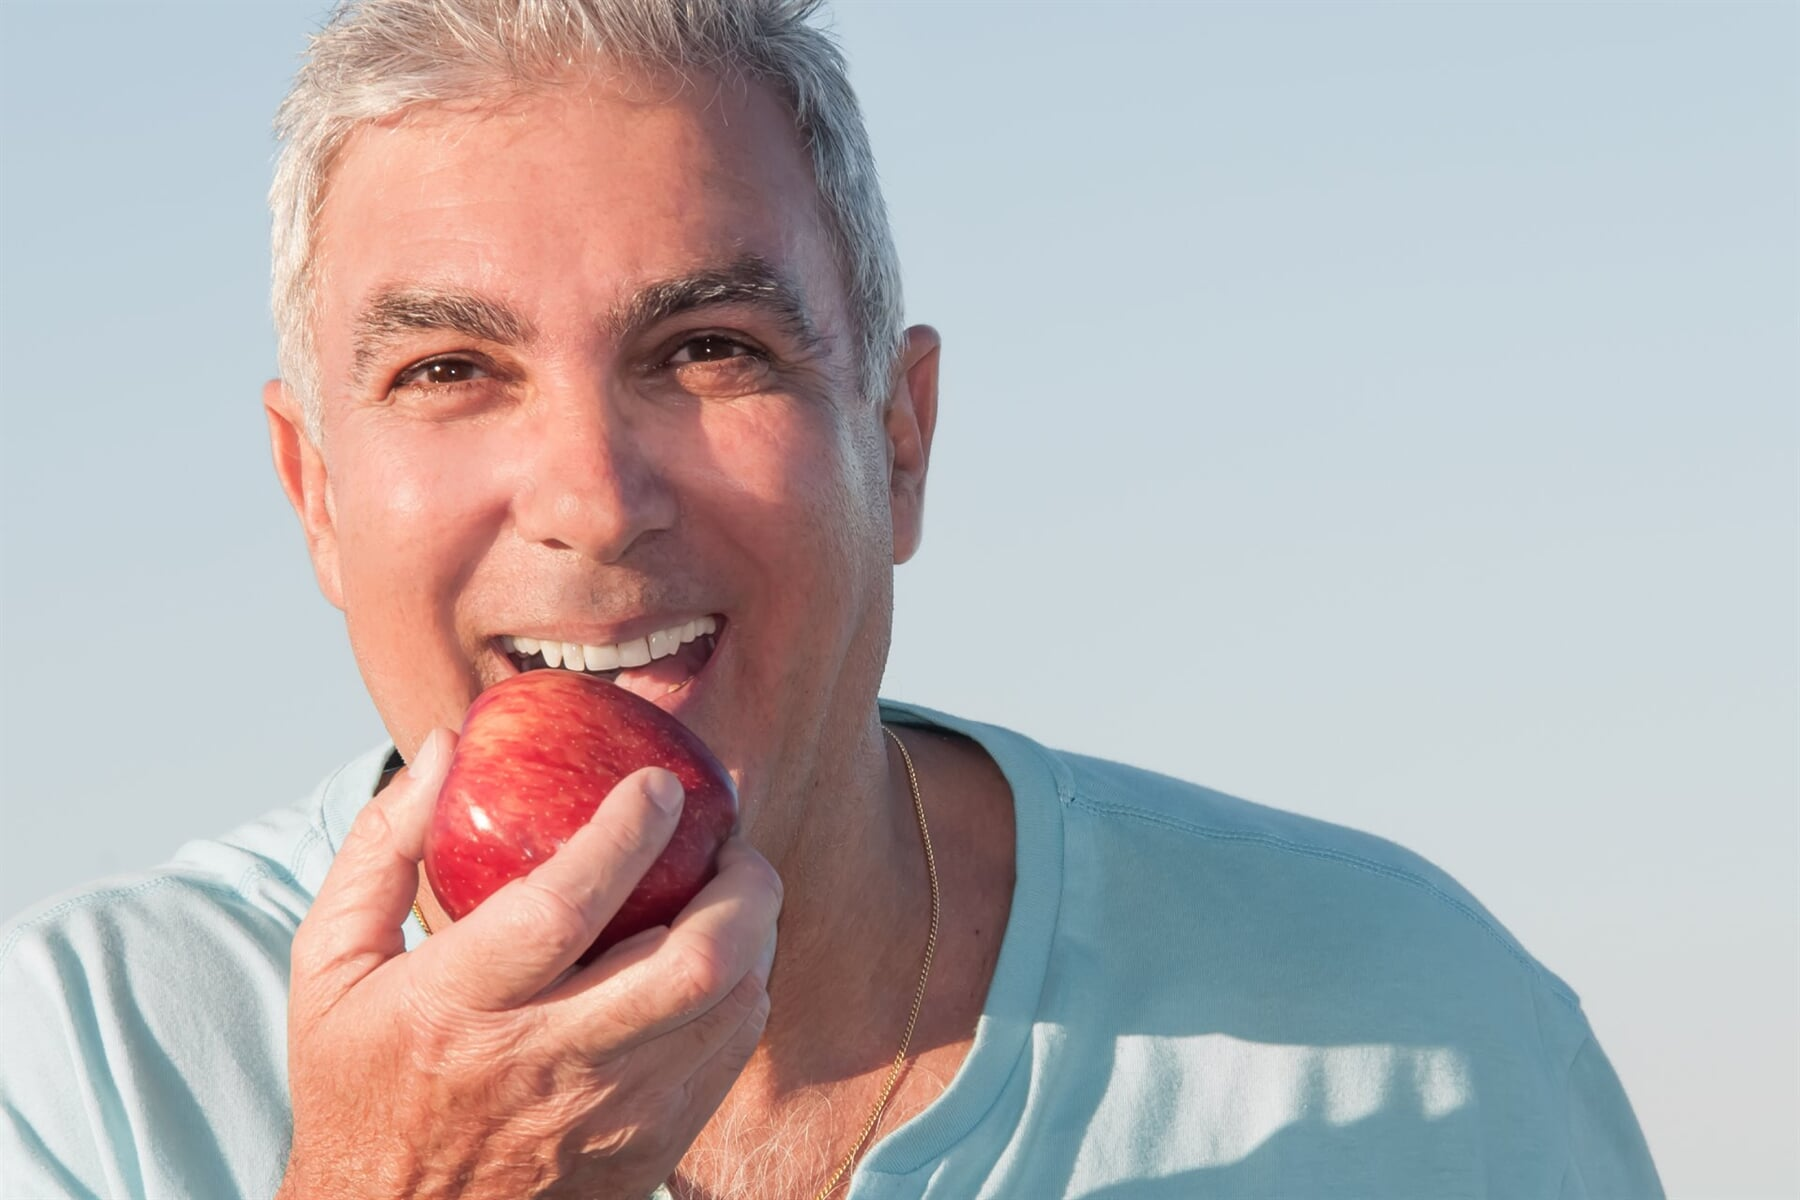 old man eating red apple